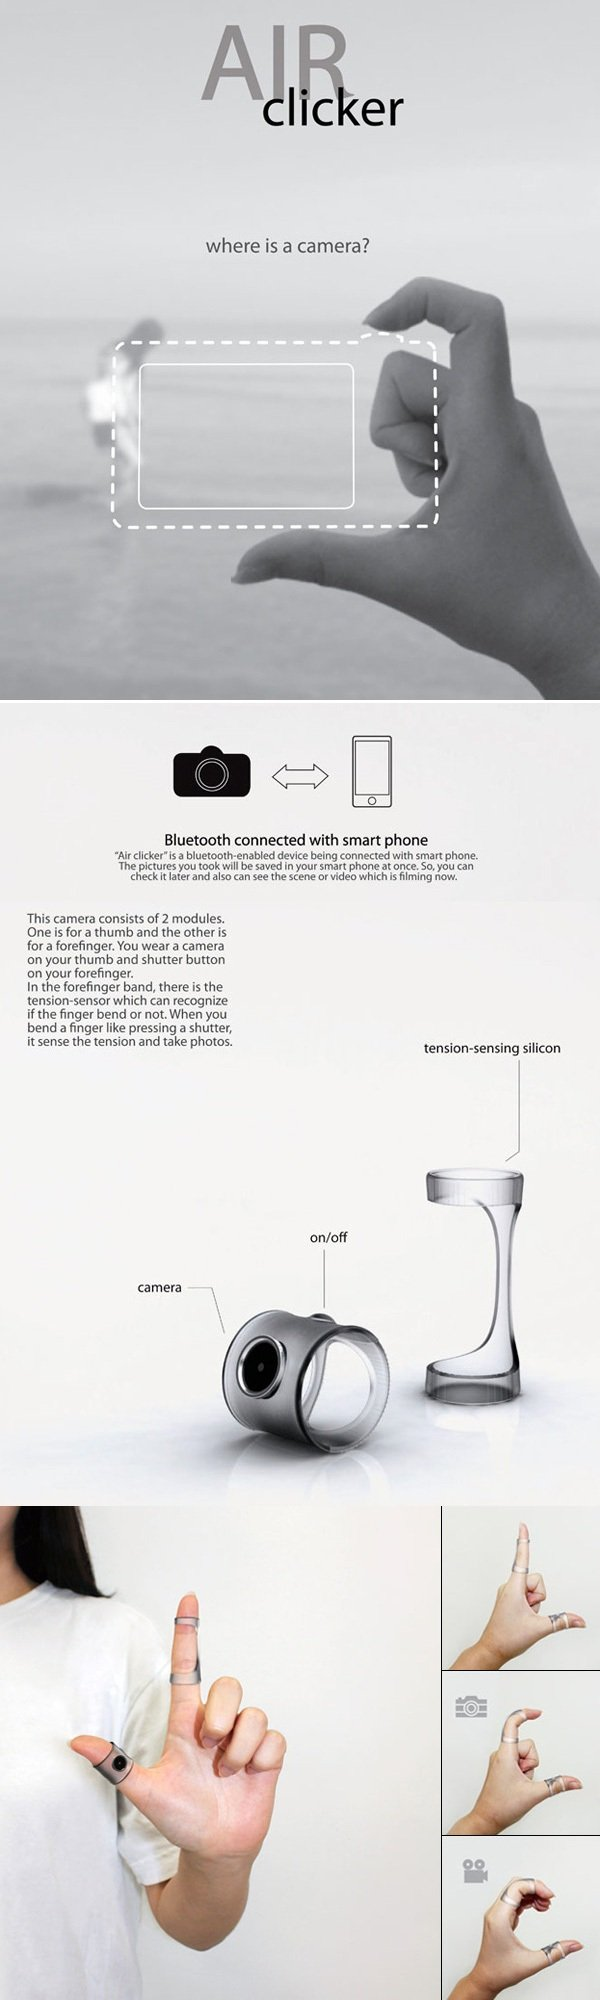 Need one, now!. Where I can find this kind sorcery. where is a camera? Bluetooth connected with smart phone is a device being connected with smart phone. The pi